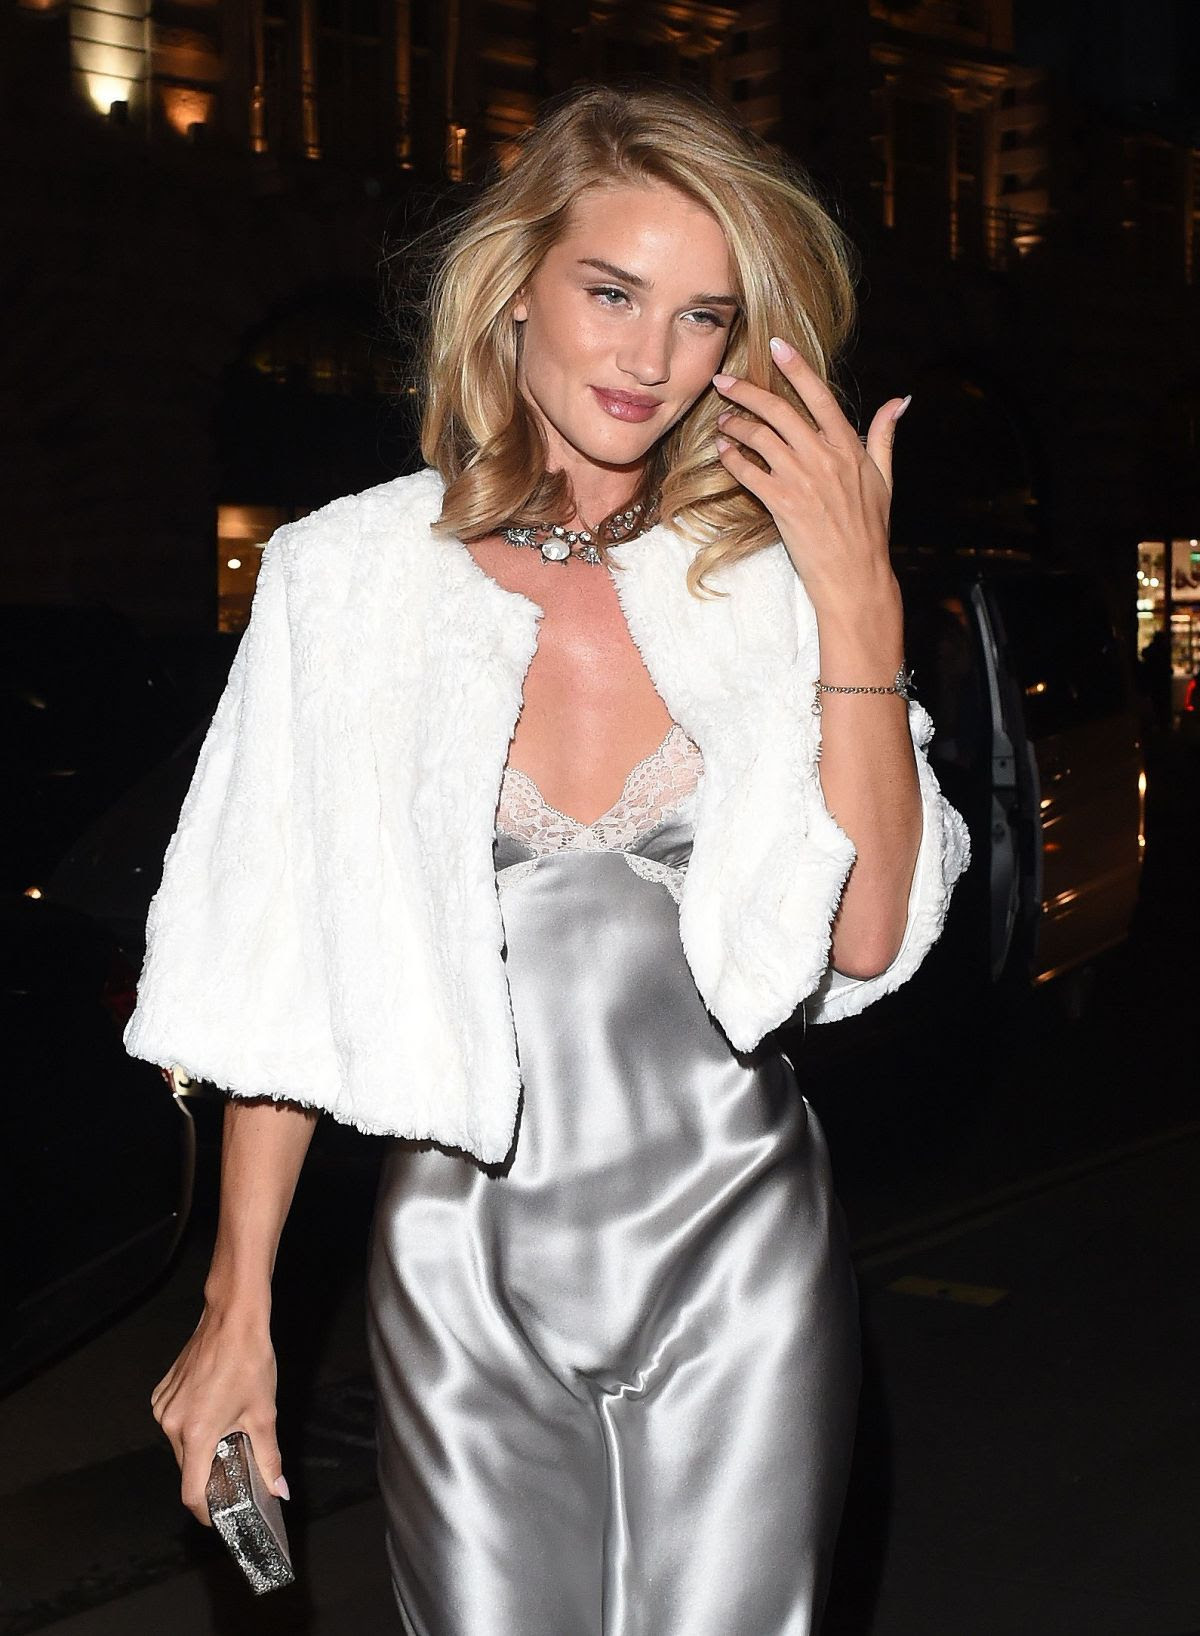 ROSIE HUNTINGTON-WHITELEY Arrives at Cafe Royal Hotel in London